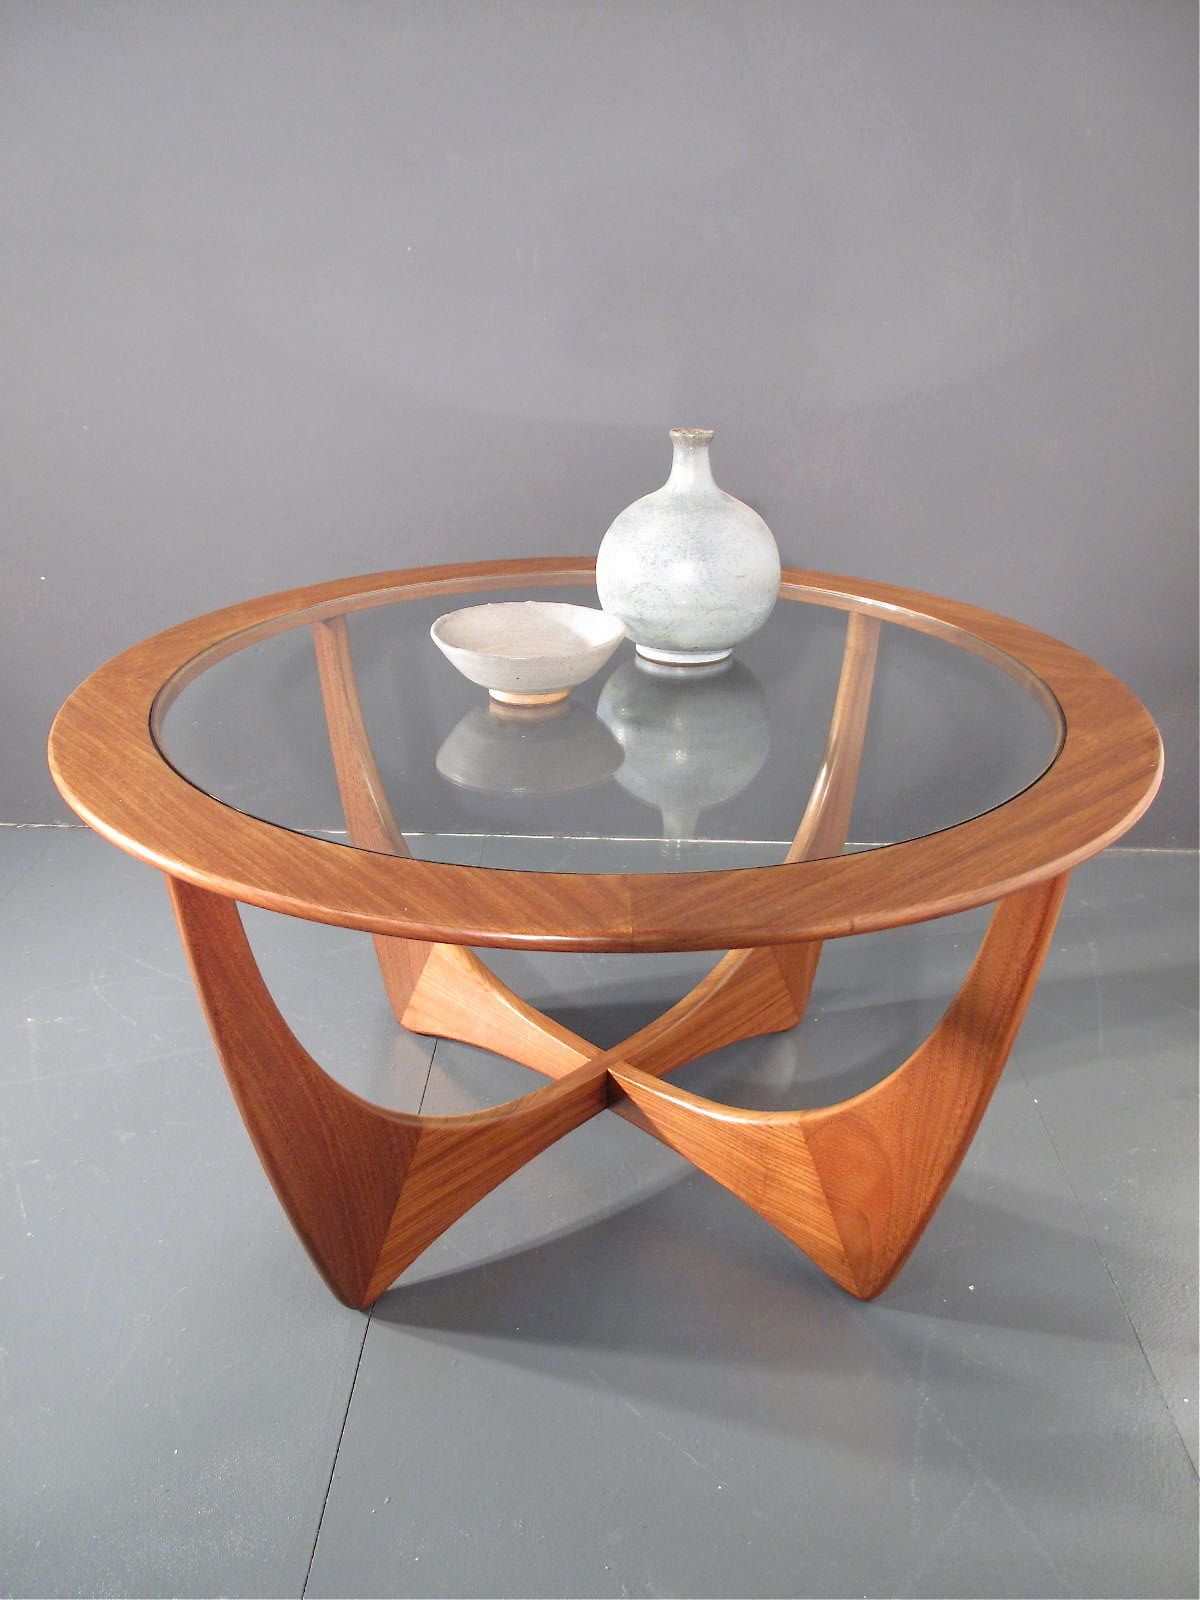 vintage G PLAN ASTRO TEAK & GLASS COFFEE TABLE DANISH Retro 60s